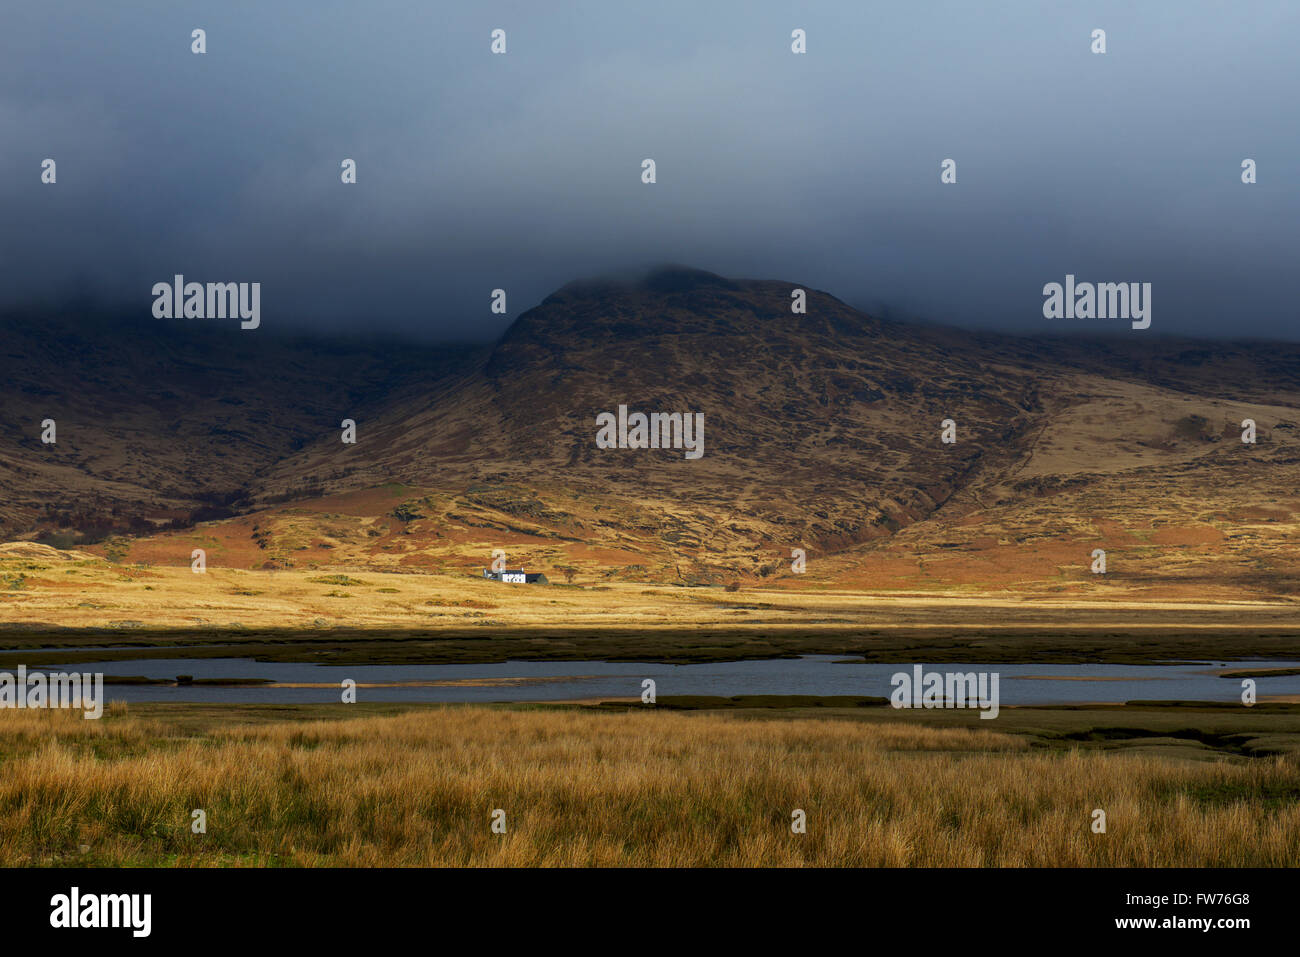 remote-cottage-on-the-isle-of-mull-inner-hebrides-scotland-uk-FW76G8.jpg